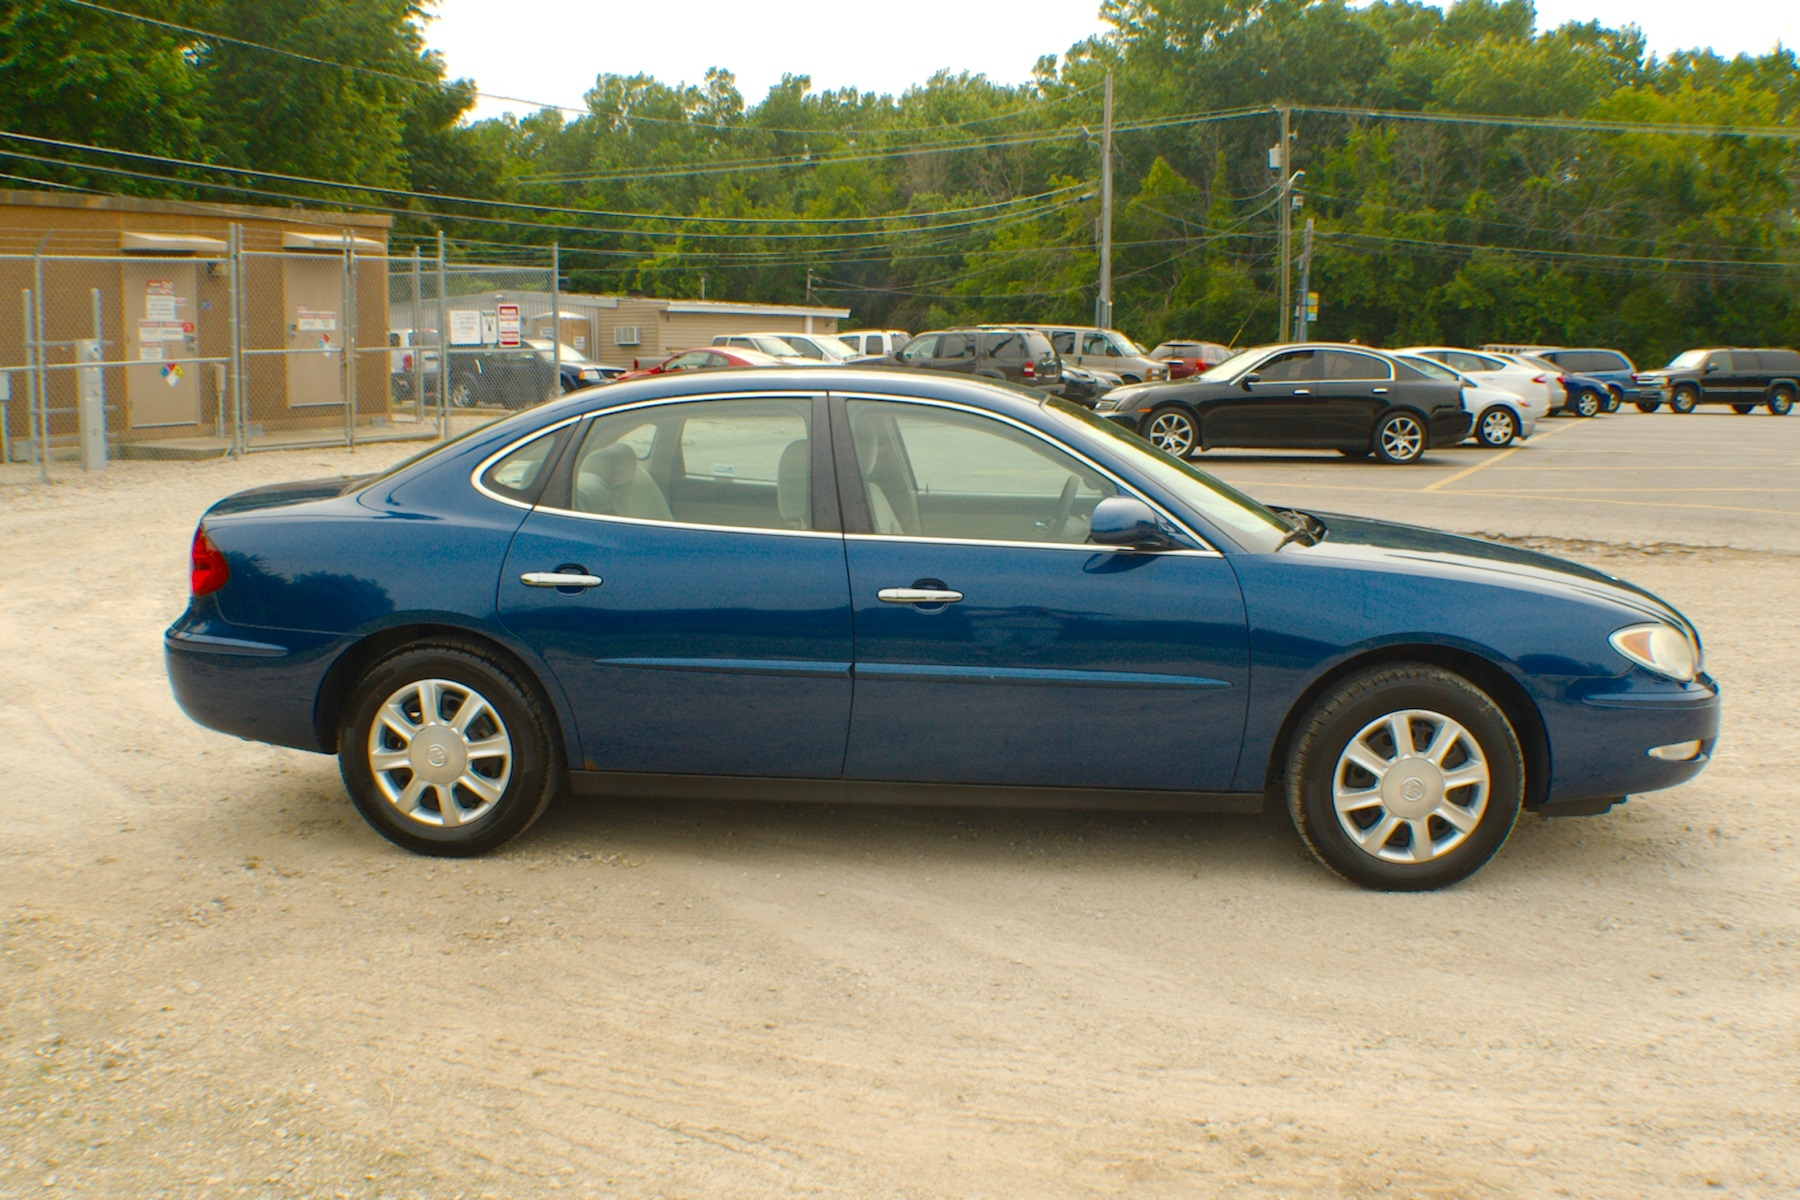 2005 Buick LeCrosse Blue Used Car Sedan Sale Bannockburn Barrington Beach Park